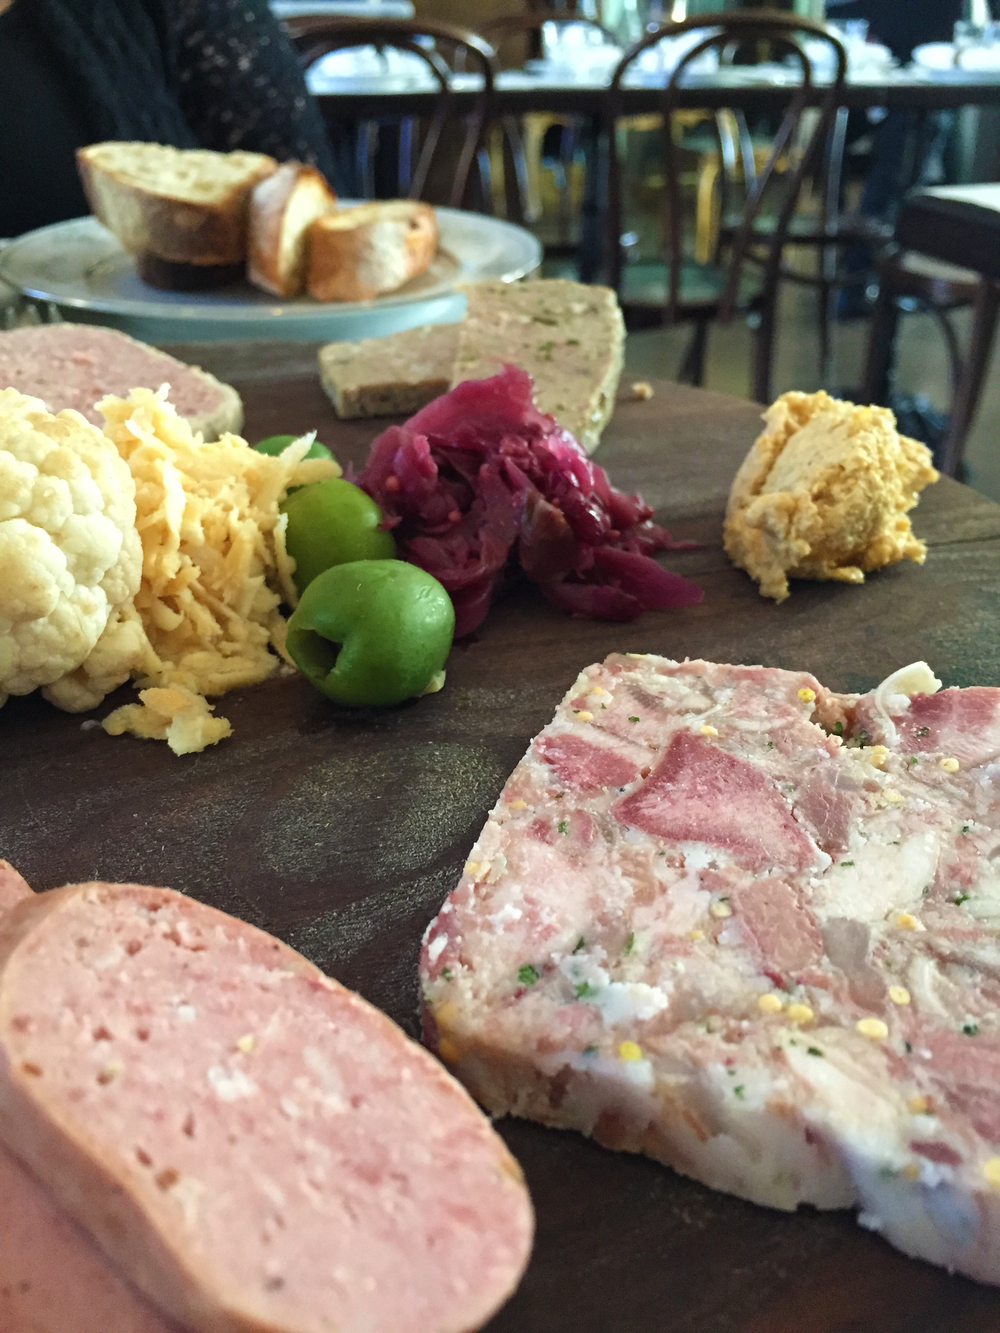 Assiette de Charcuteries (liverwurst and headcheese in the foreground)